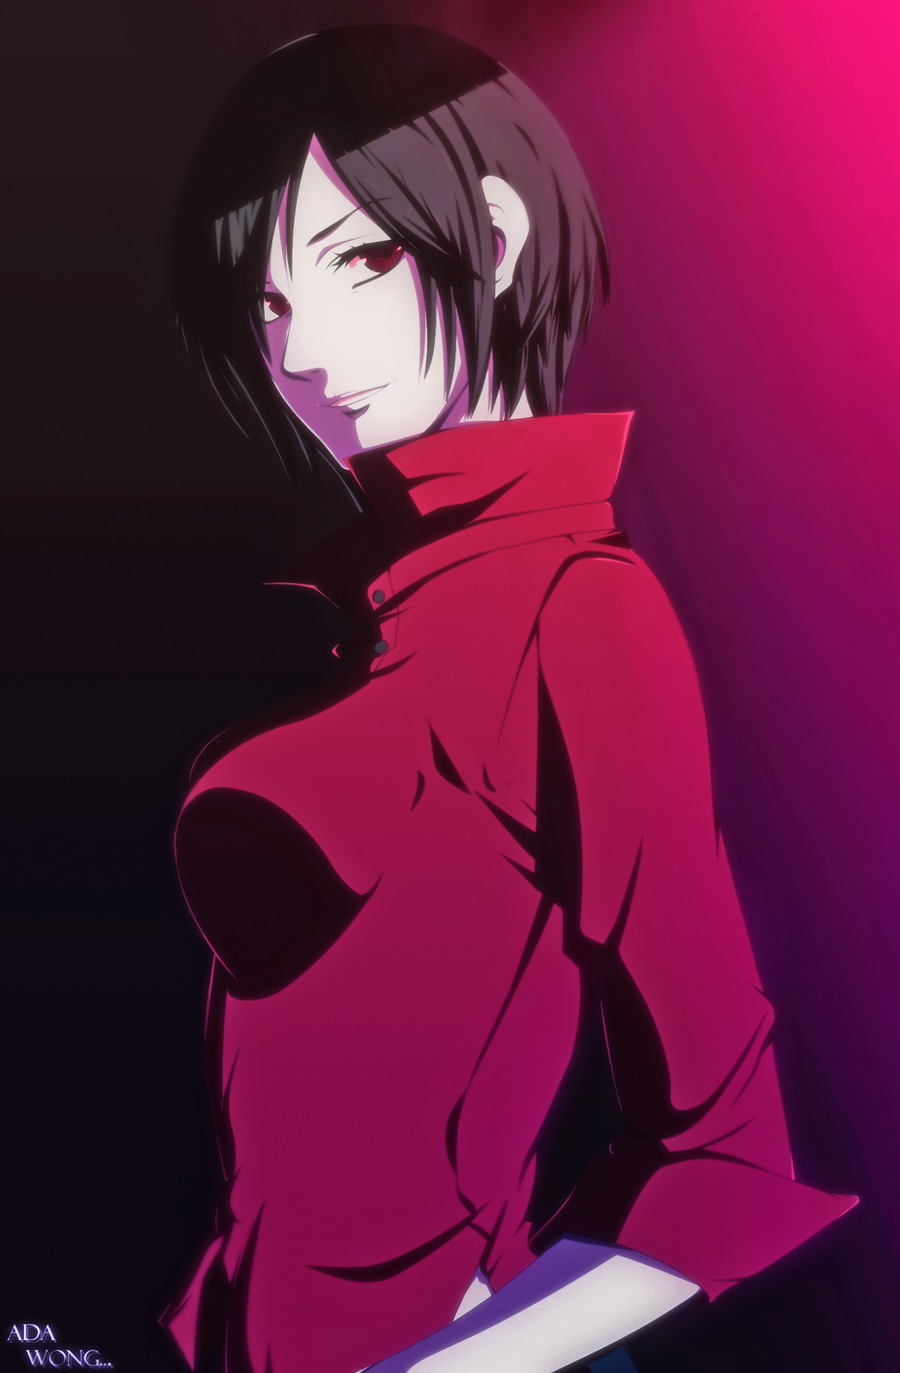 ada wong coloring pages - photo#26